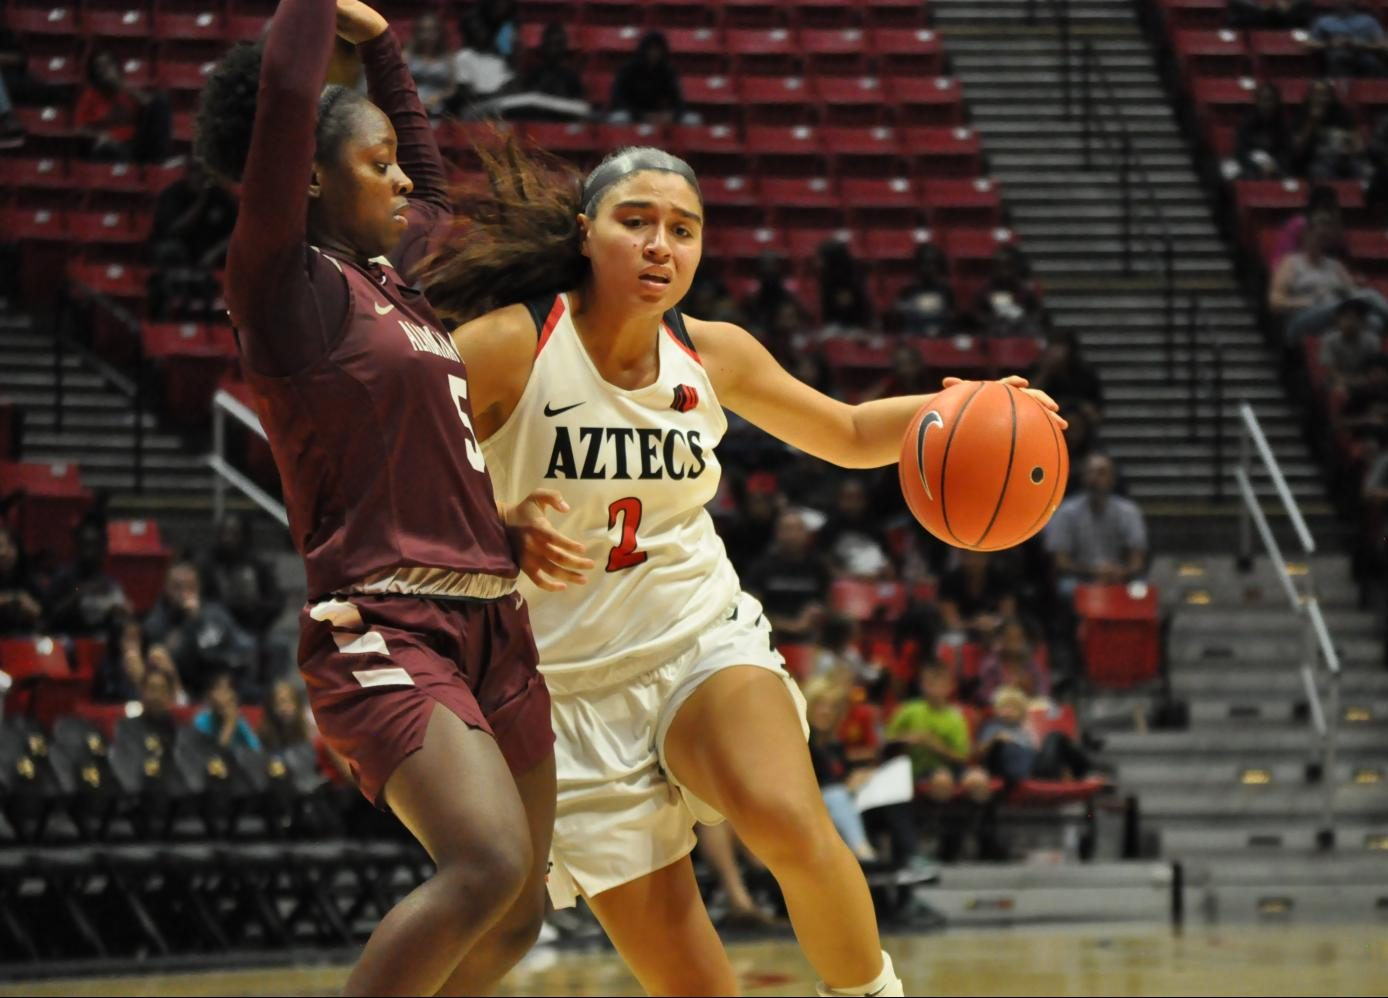 Sophomore guard Sophia Ramos attempts to shrug off the Alabama A&M defender during the Aztecs' 61-53 loss on Nov. 14 at Viejas Arena.